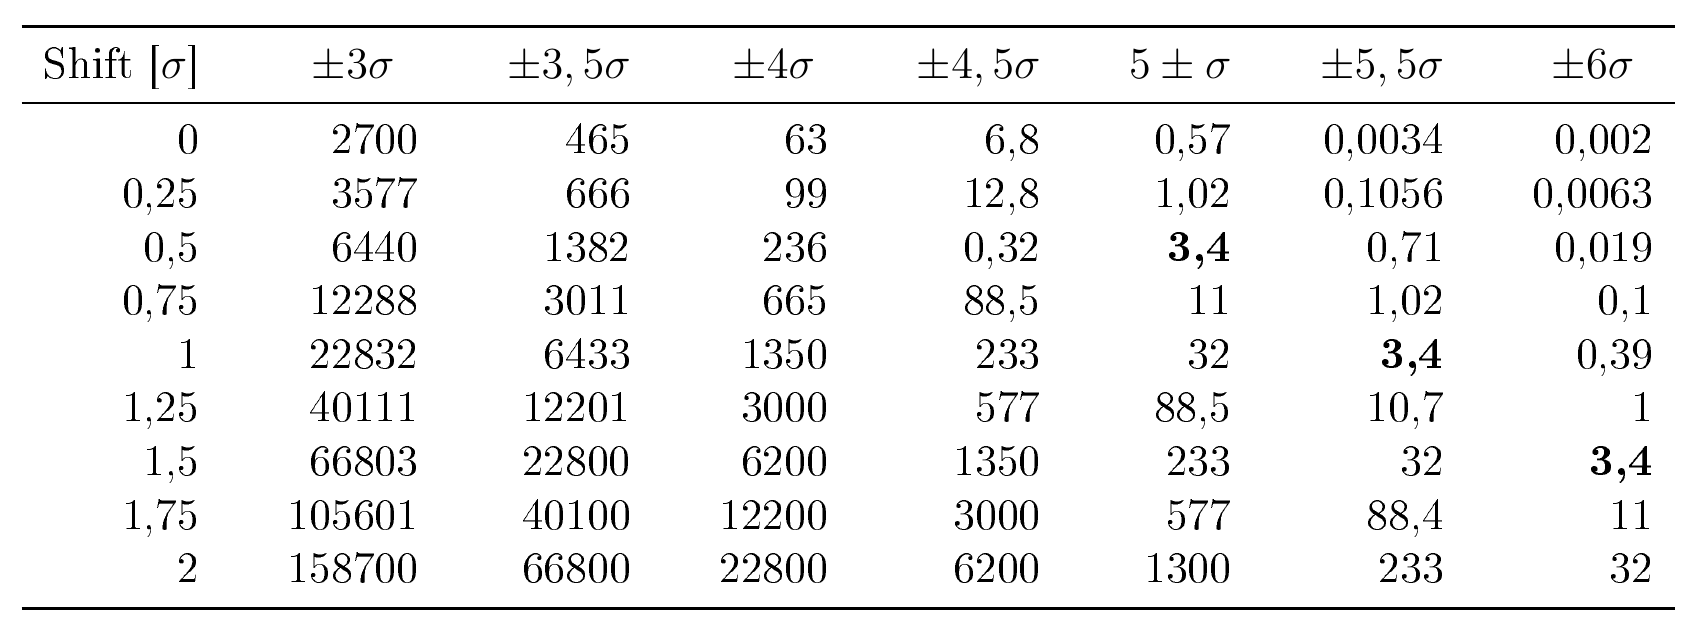 Table: DPMO for various process intervals and shifts (adapted from Evans, 2005)